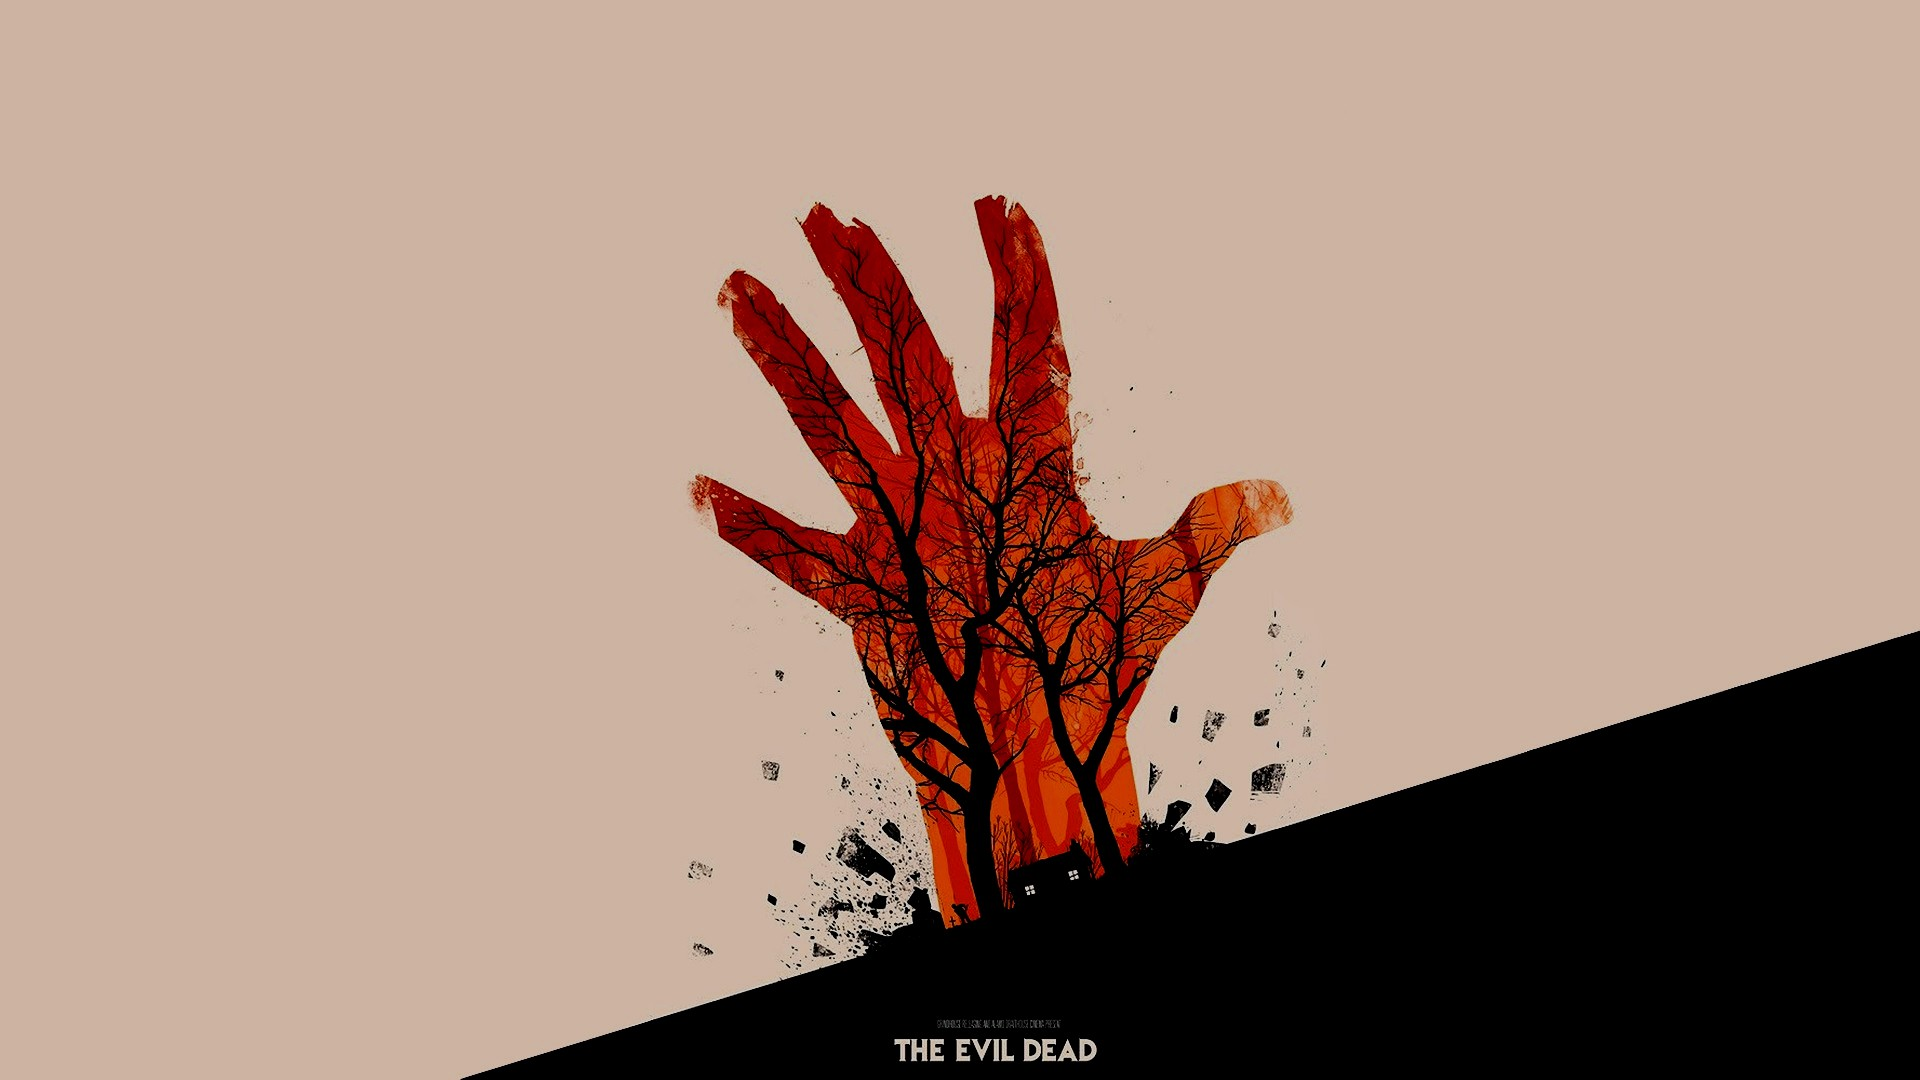 The Evil Dead Artwork Movies Olly Moss Minimalism